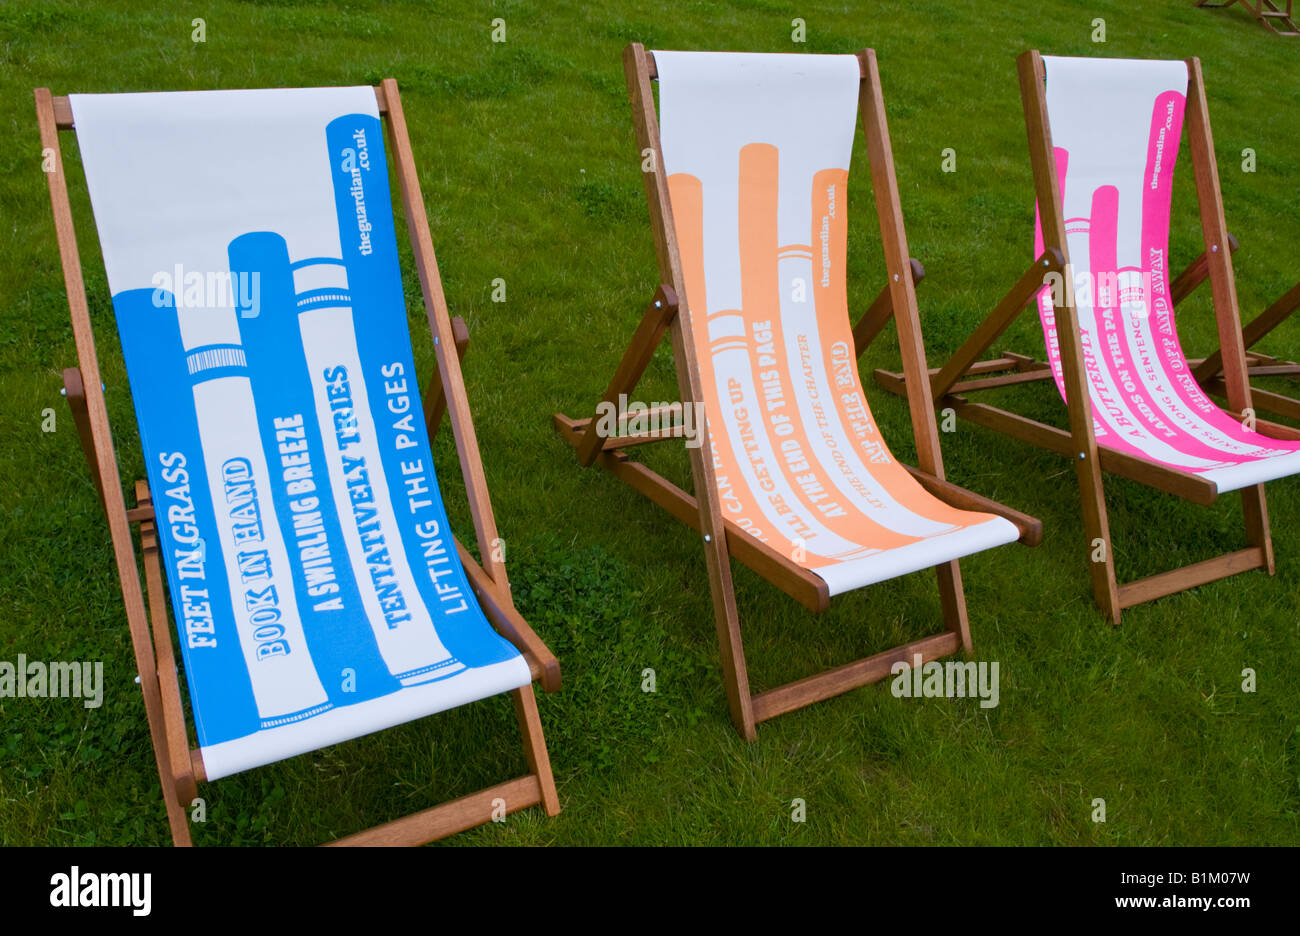 Promotional deckchairs on grass at The Guardian Hay Festival 2008 Hay on Wye Powys Wales UK EU - Stock Image